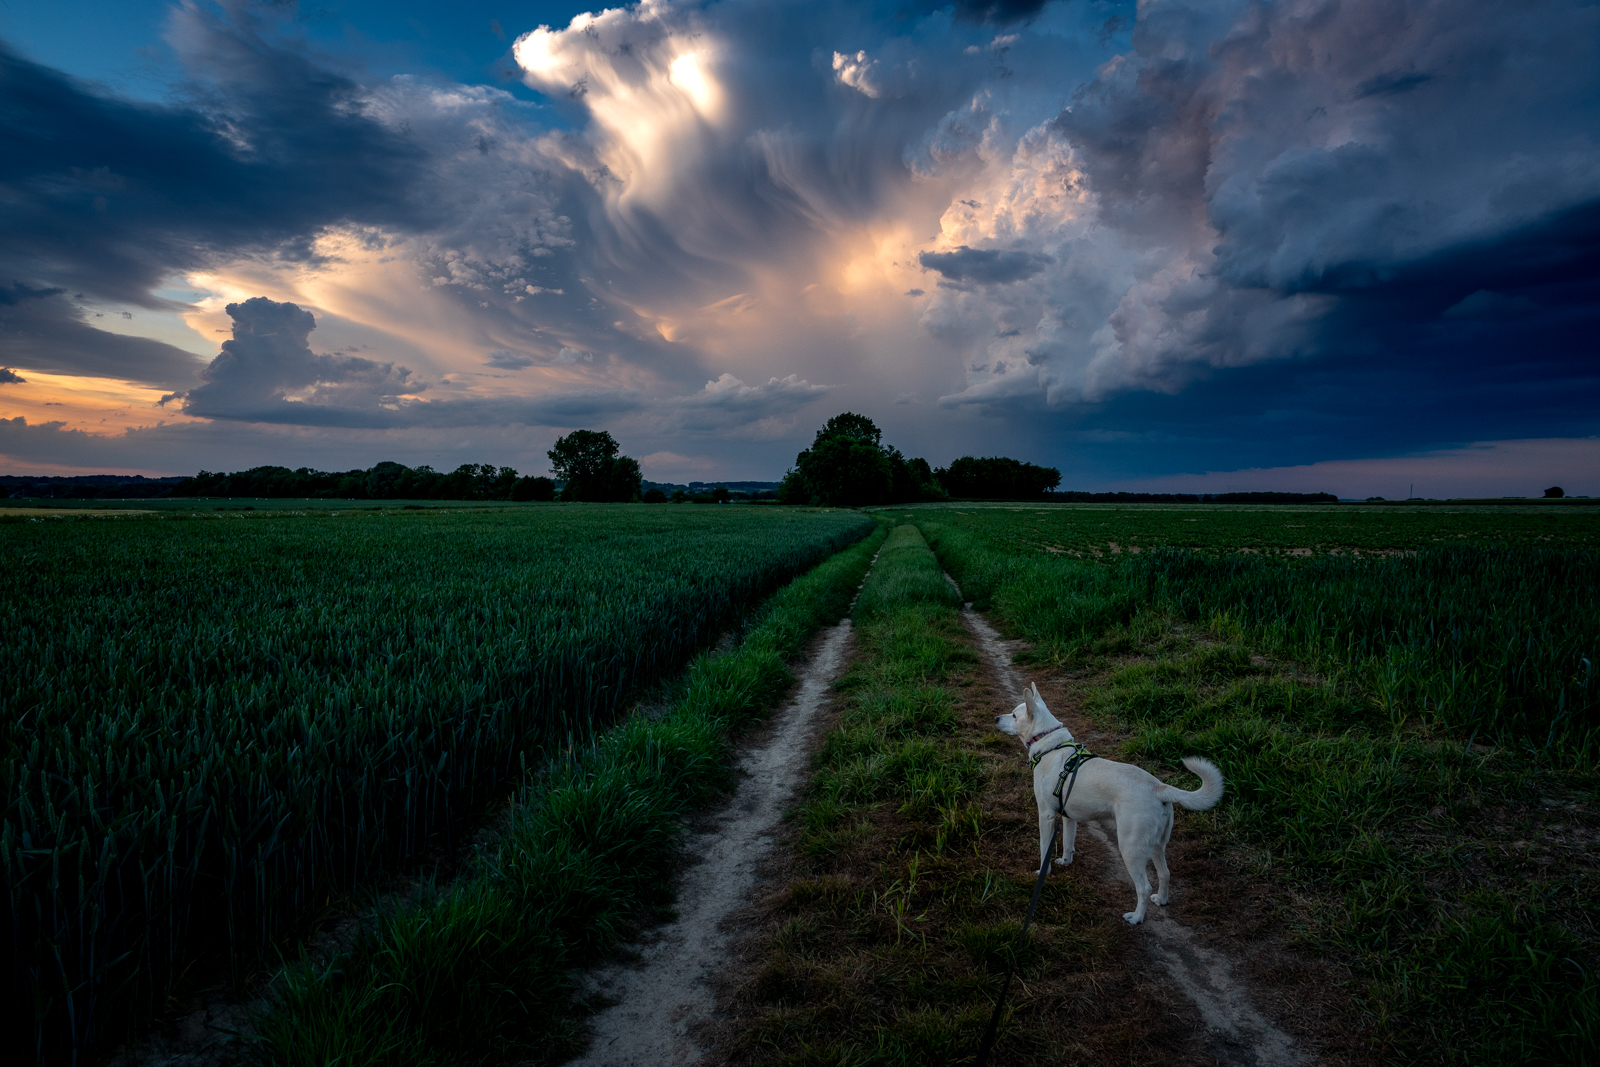 Epic sunset with storm clouds in Leefdaal, Belgium